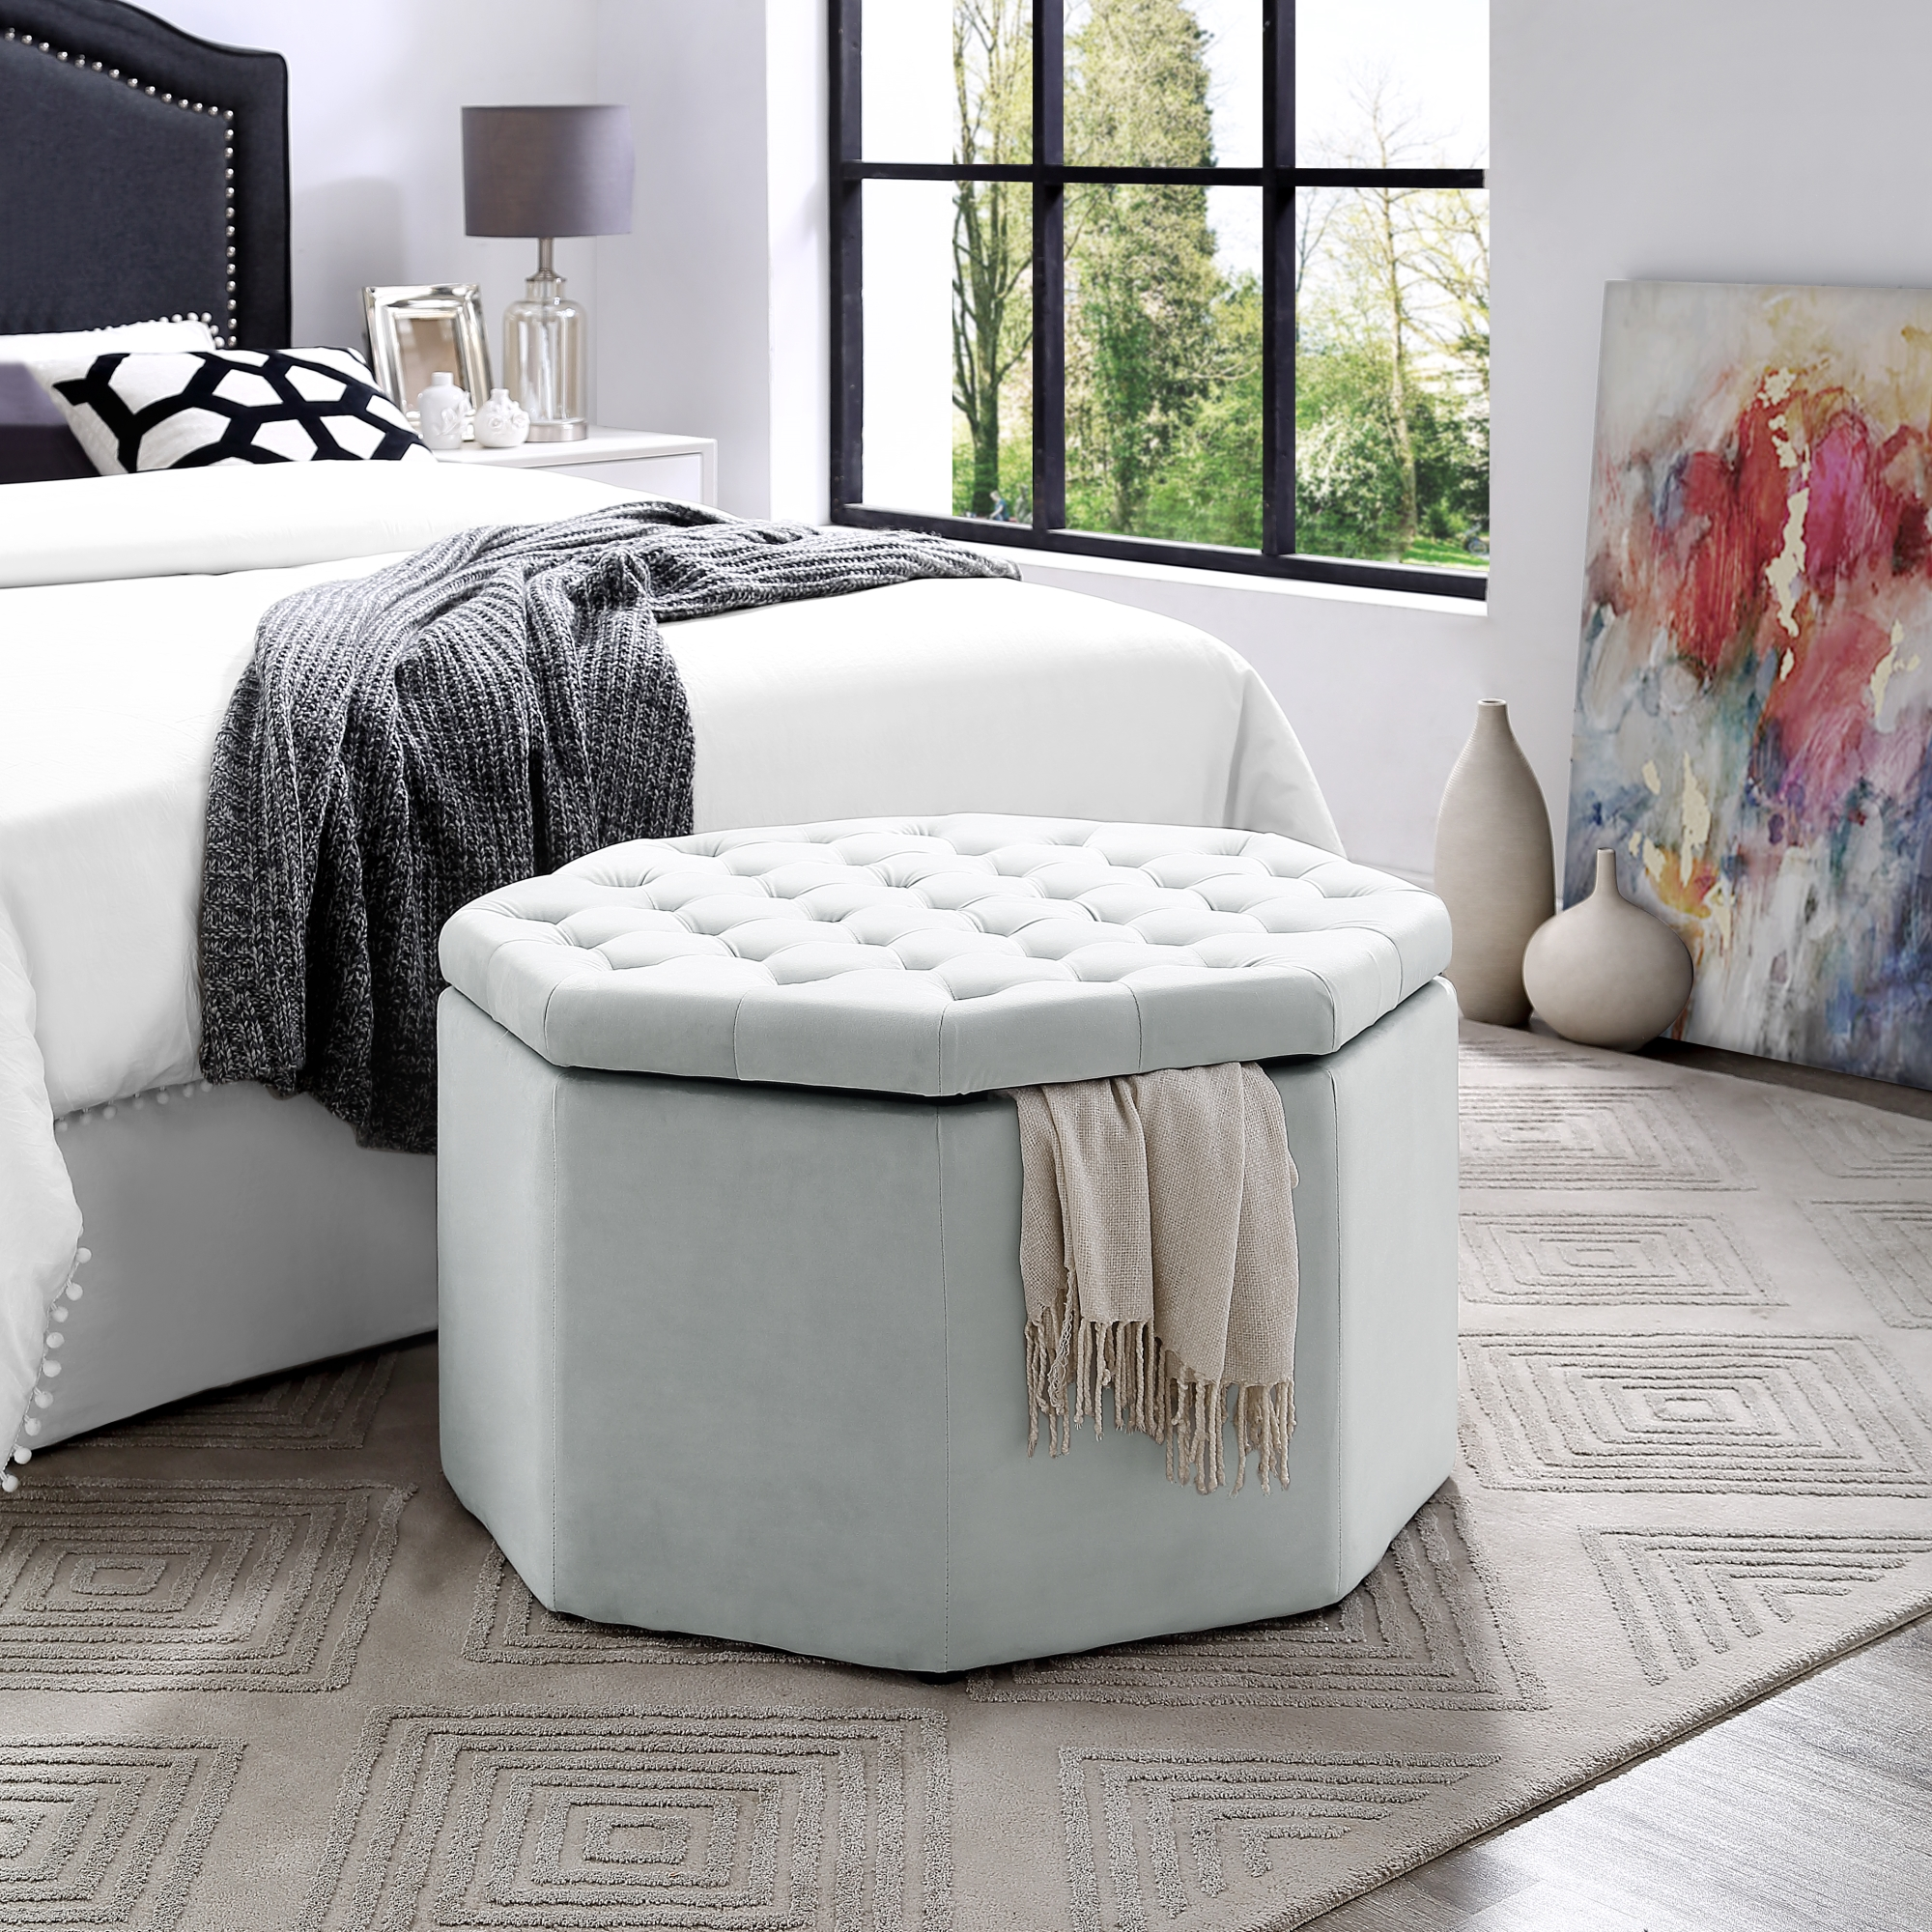 Zora Velvet Storage Ottoman Octagon Cocktail Coffee Table by Inspired Home, Light Grey